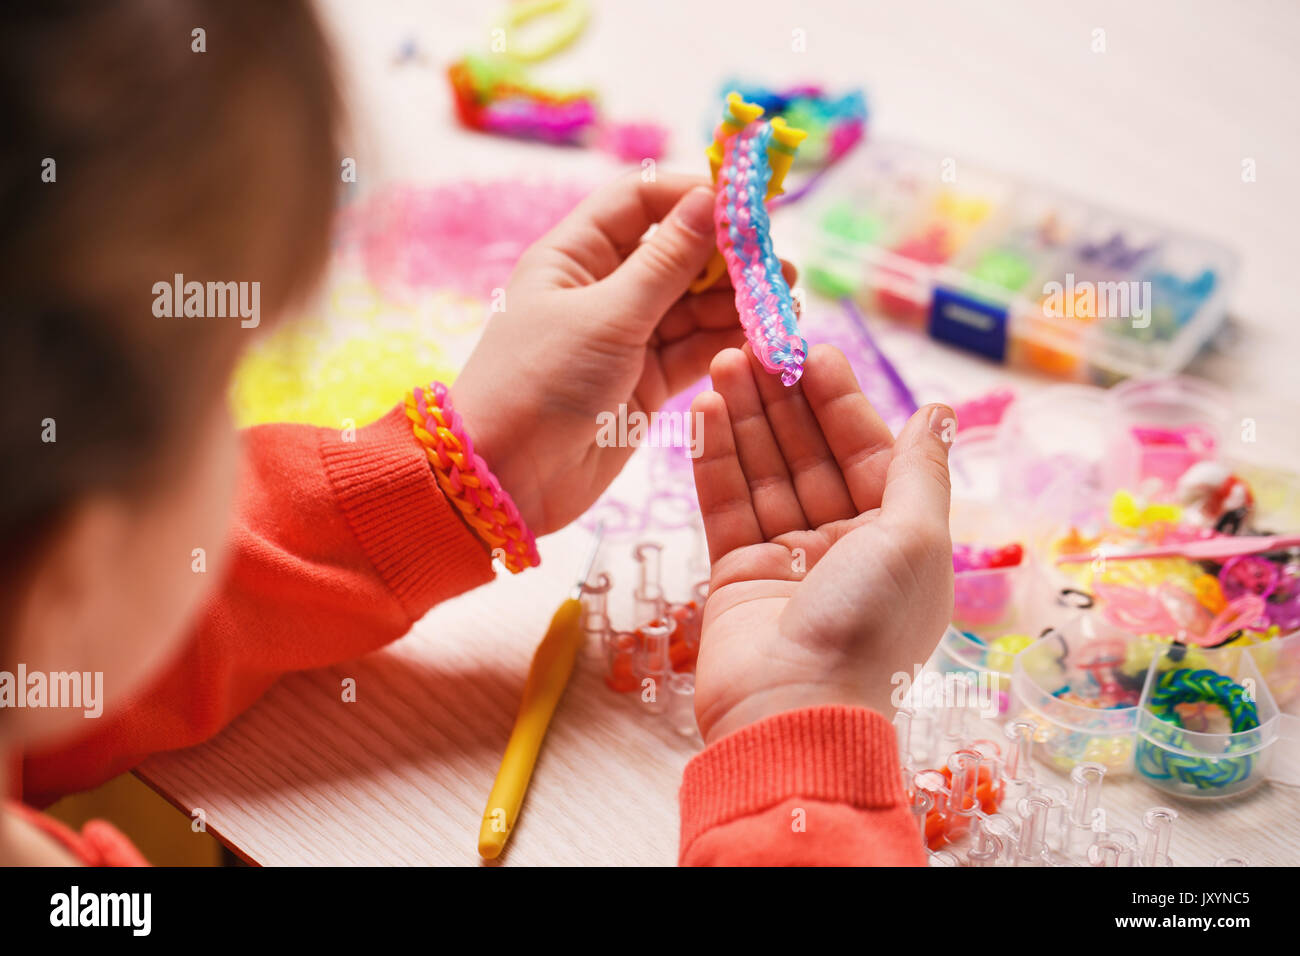 extracurricular activities, group, education and handwork concept - colored rubber bands for weaving accessories in the hands of a girl on a wooden ba - Stock Image